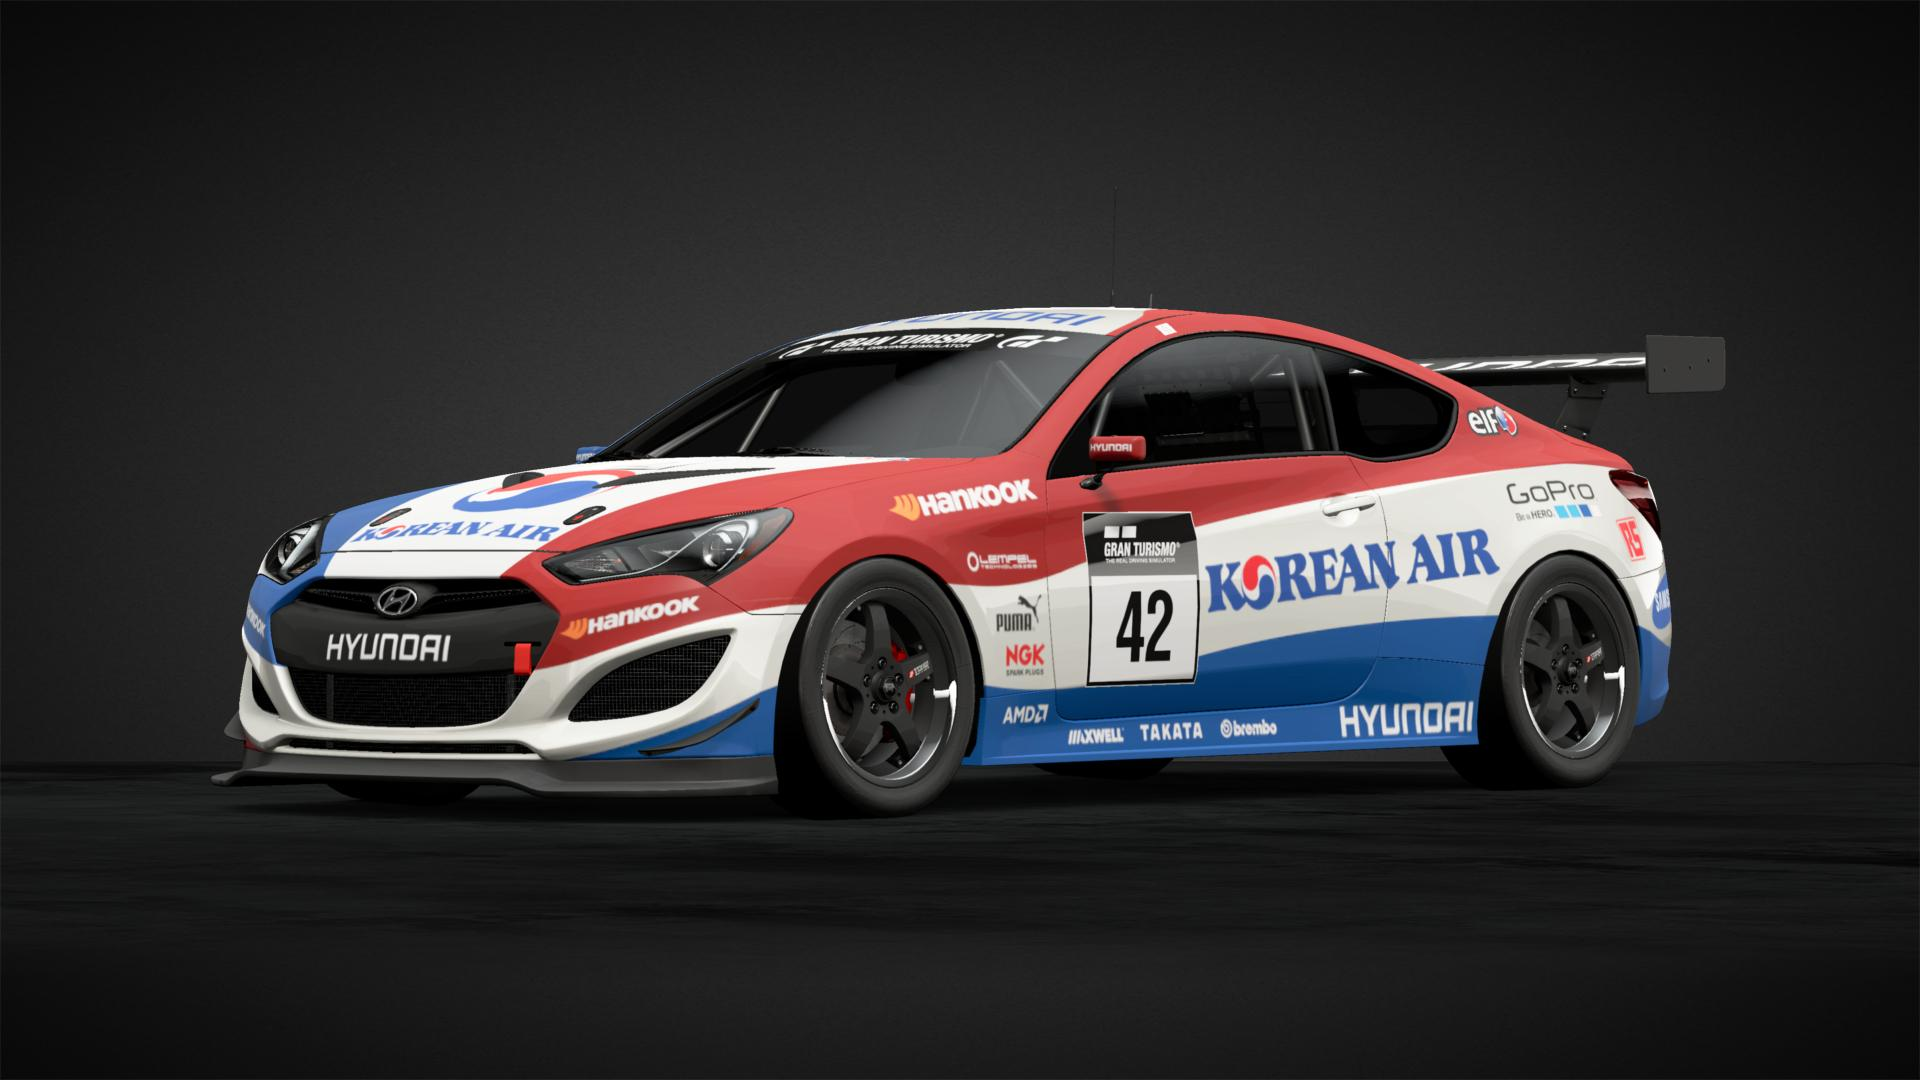 Korean Air Hyundai Car Livery By Thenoisygiraffe Community